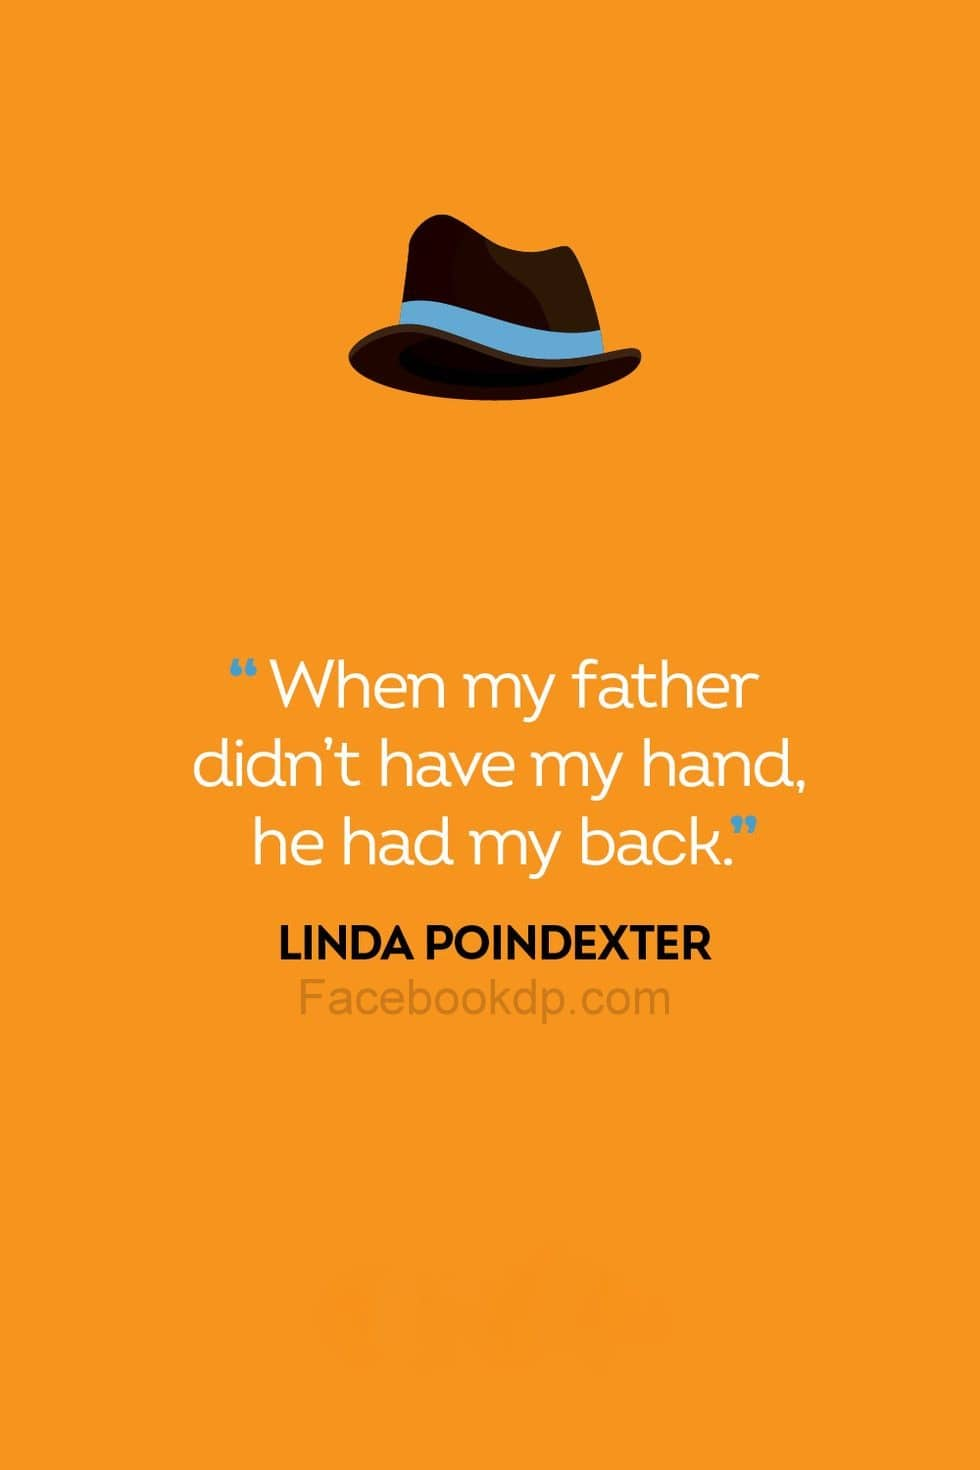 Father's Day Quotes for WhatsApp Status